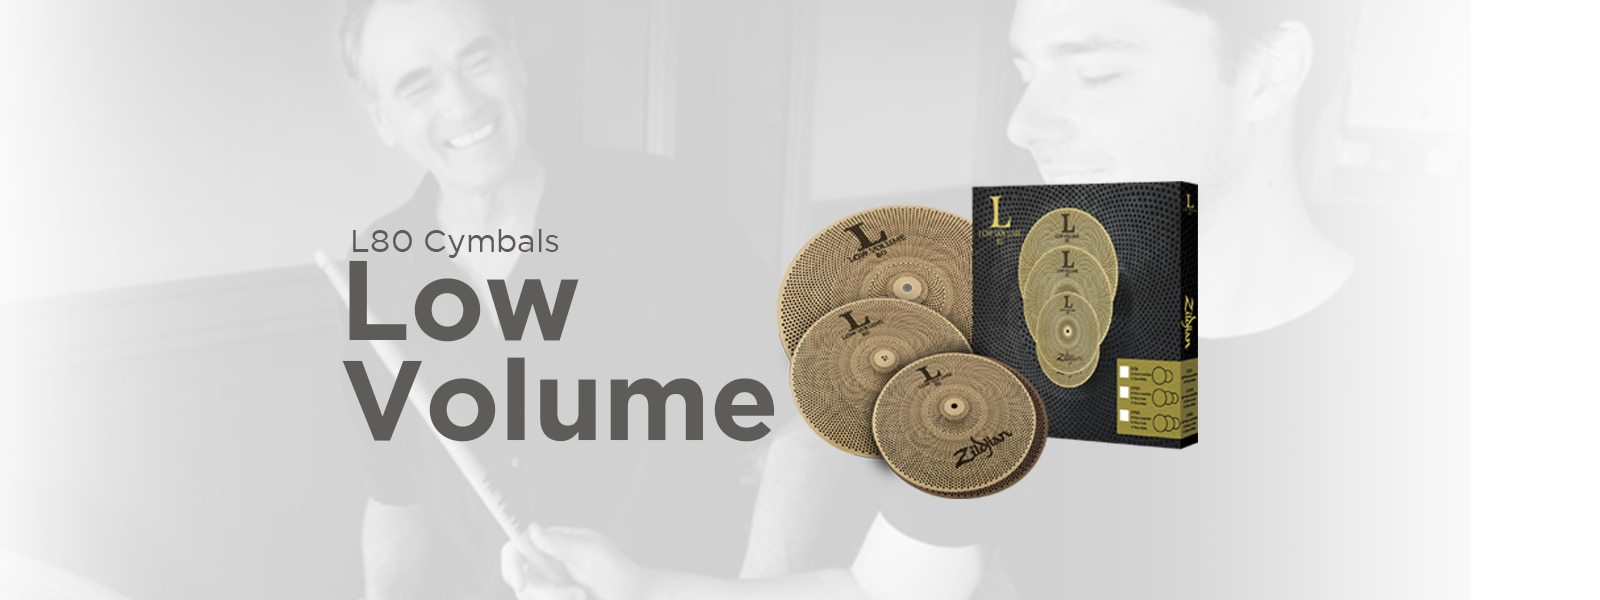 Zildjian low volume